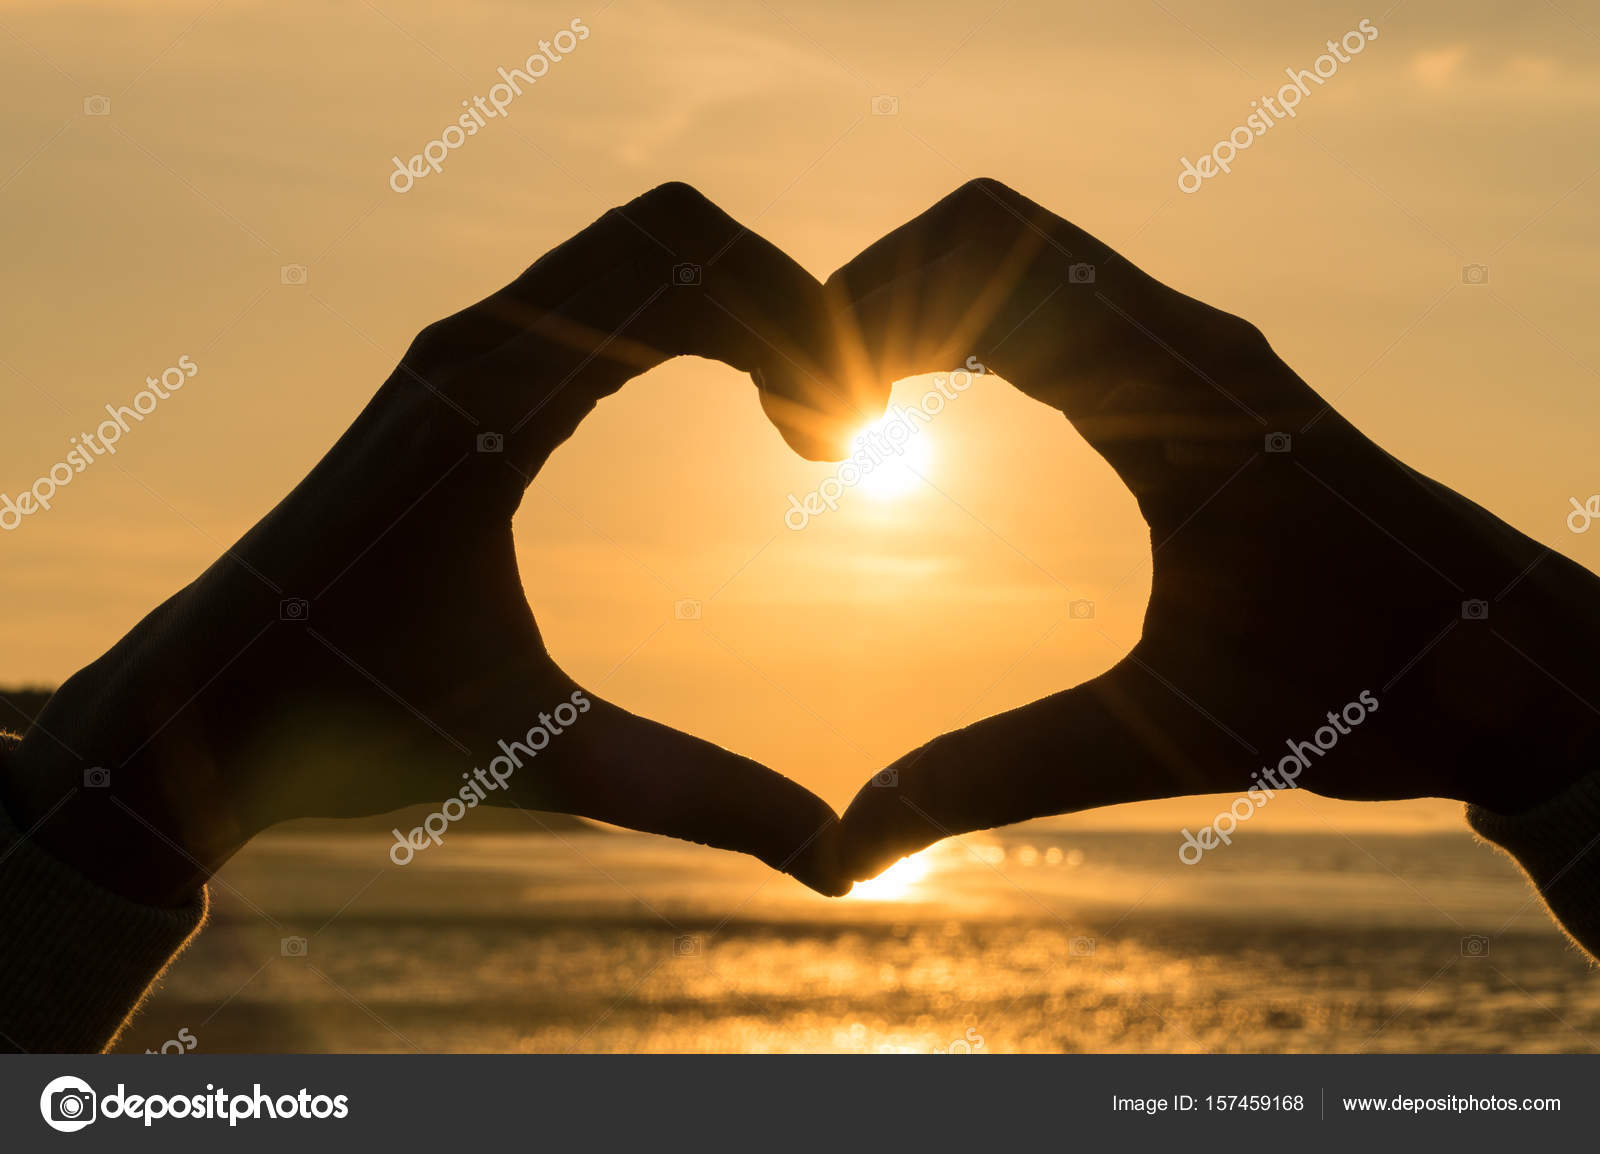 Hand Heart Frame Shape Silhouette Made Against The Sun Sky Of A Sunrise Or Sunset On Deserted Empty Beach Photo By Dmbaker